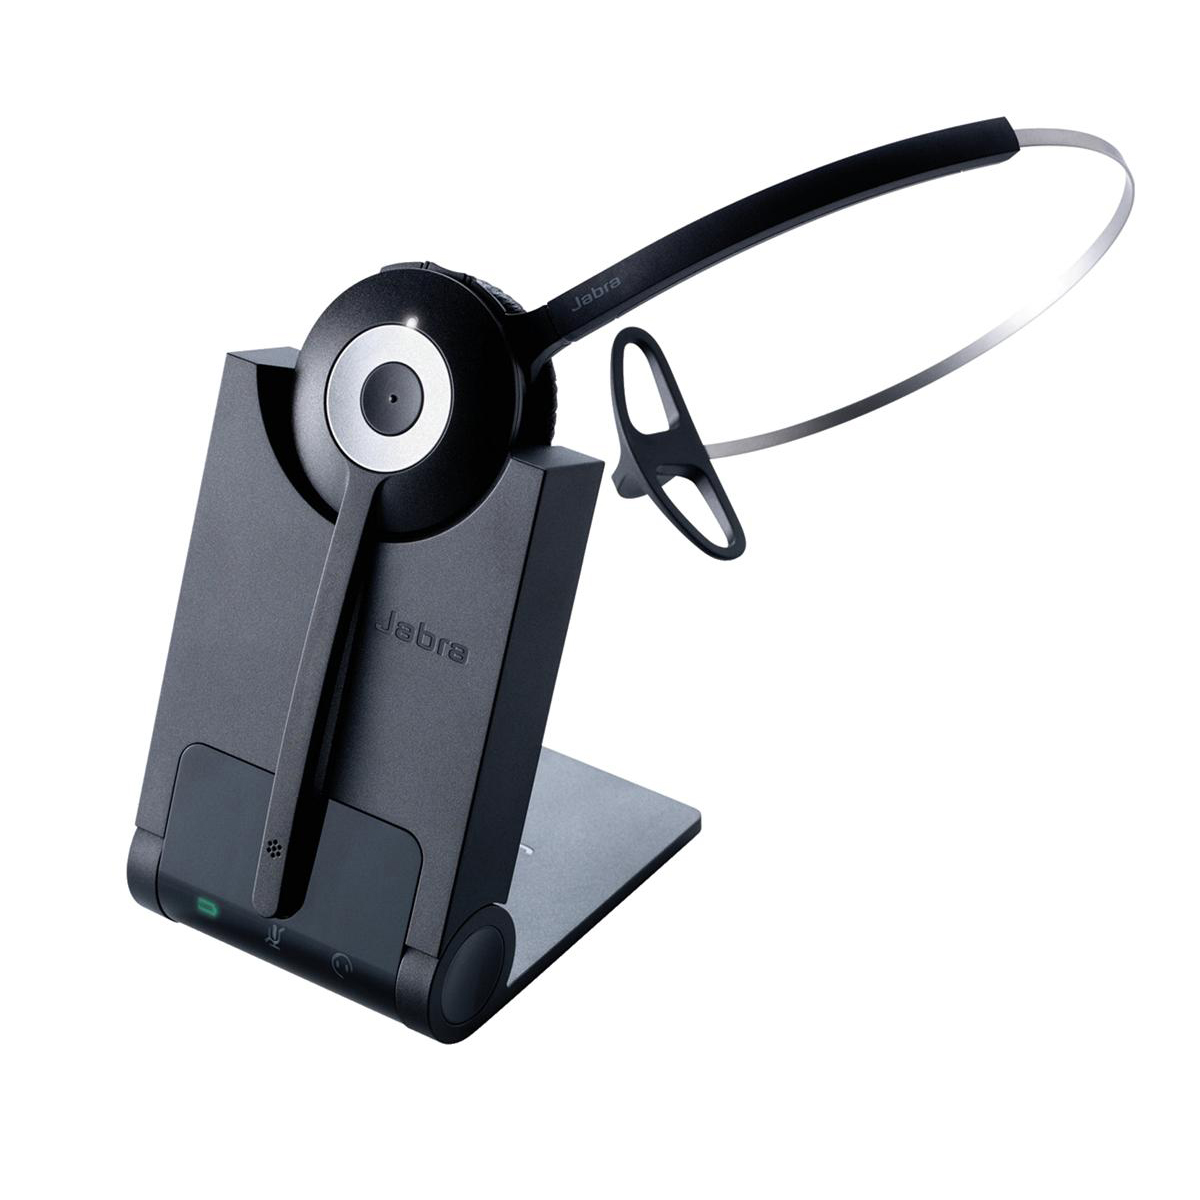 Image for Jabra Pro 920 Cordless Headset Ref 920-25-508-102